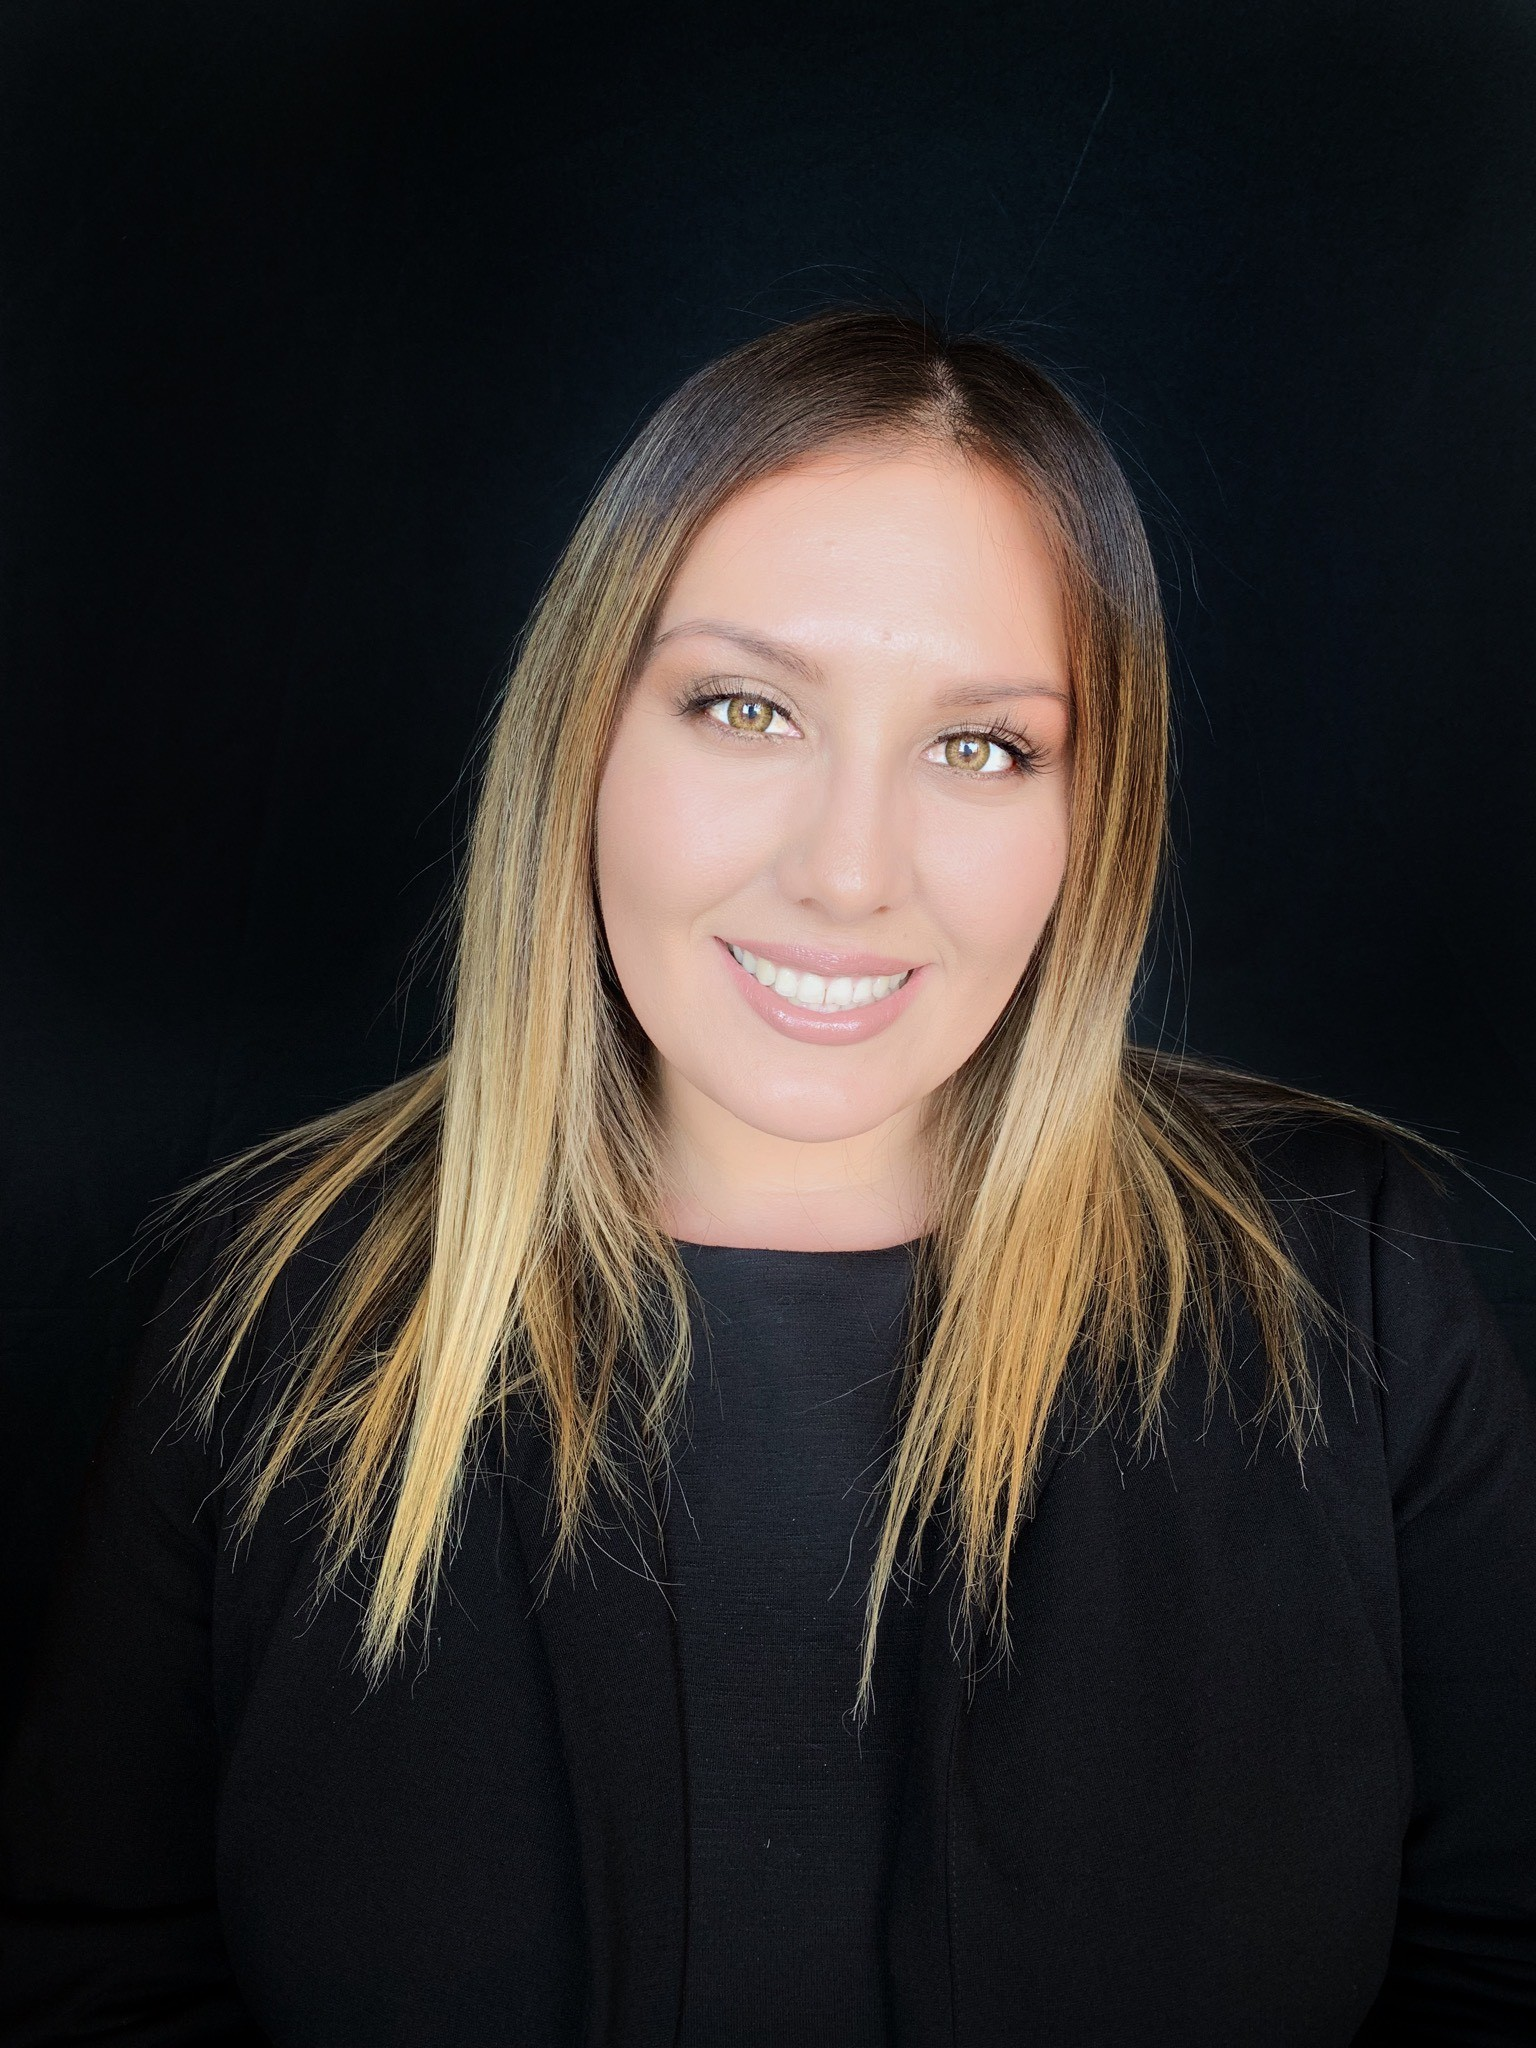 Joanna Mickelson, Sales Manager